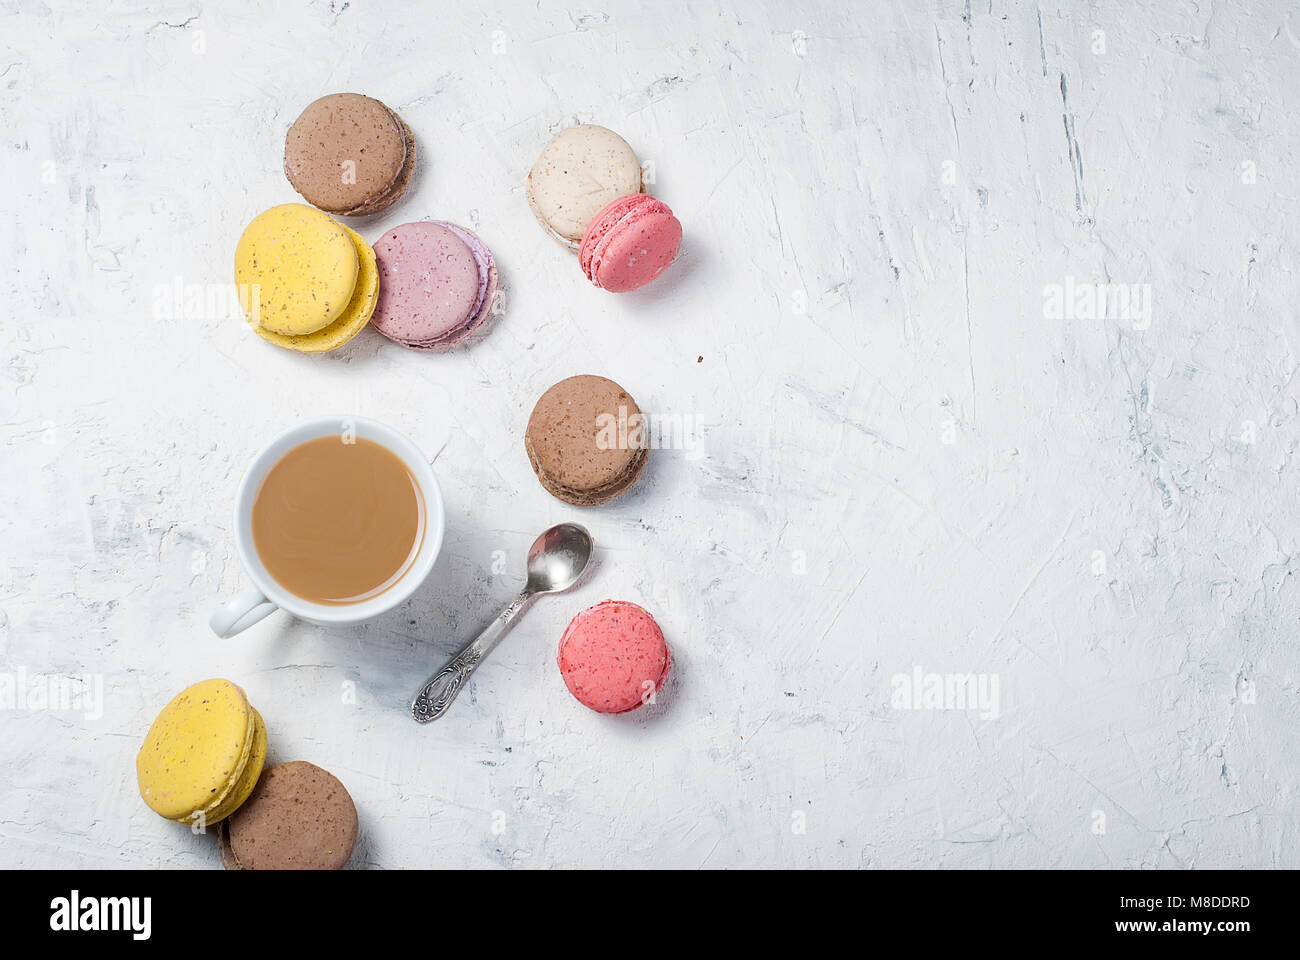 cup of coffee with milk and colorful makaoouns on a light background. Top view. Copy space. - Stock Image